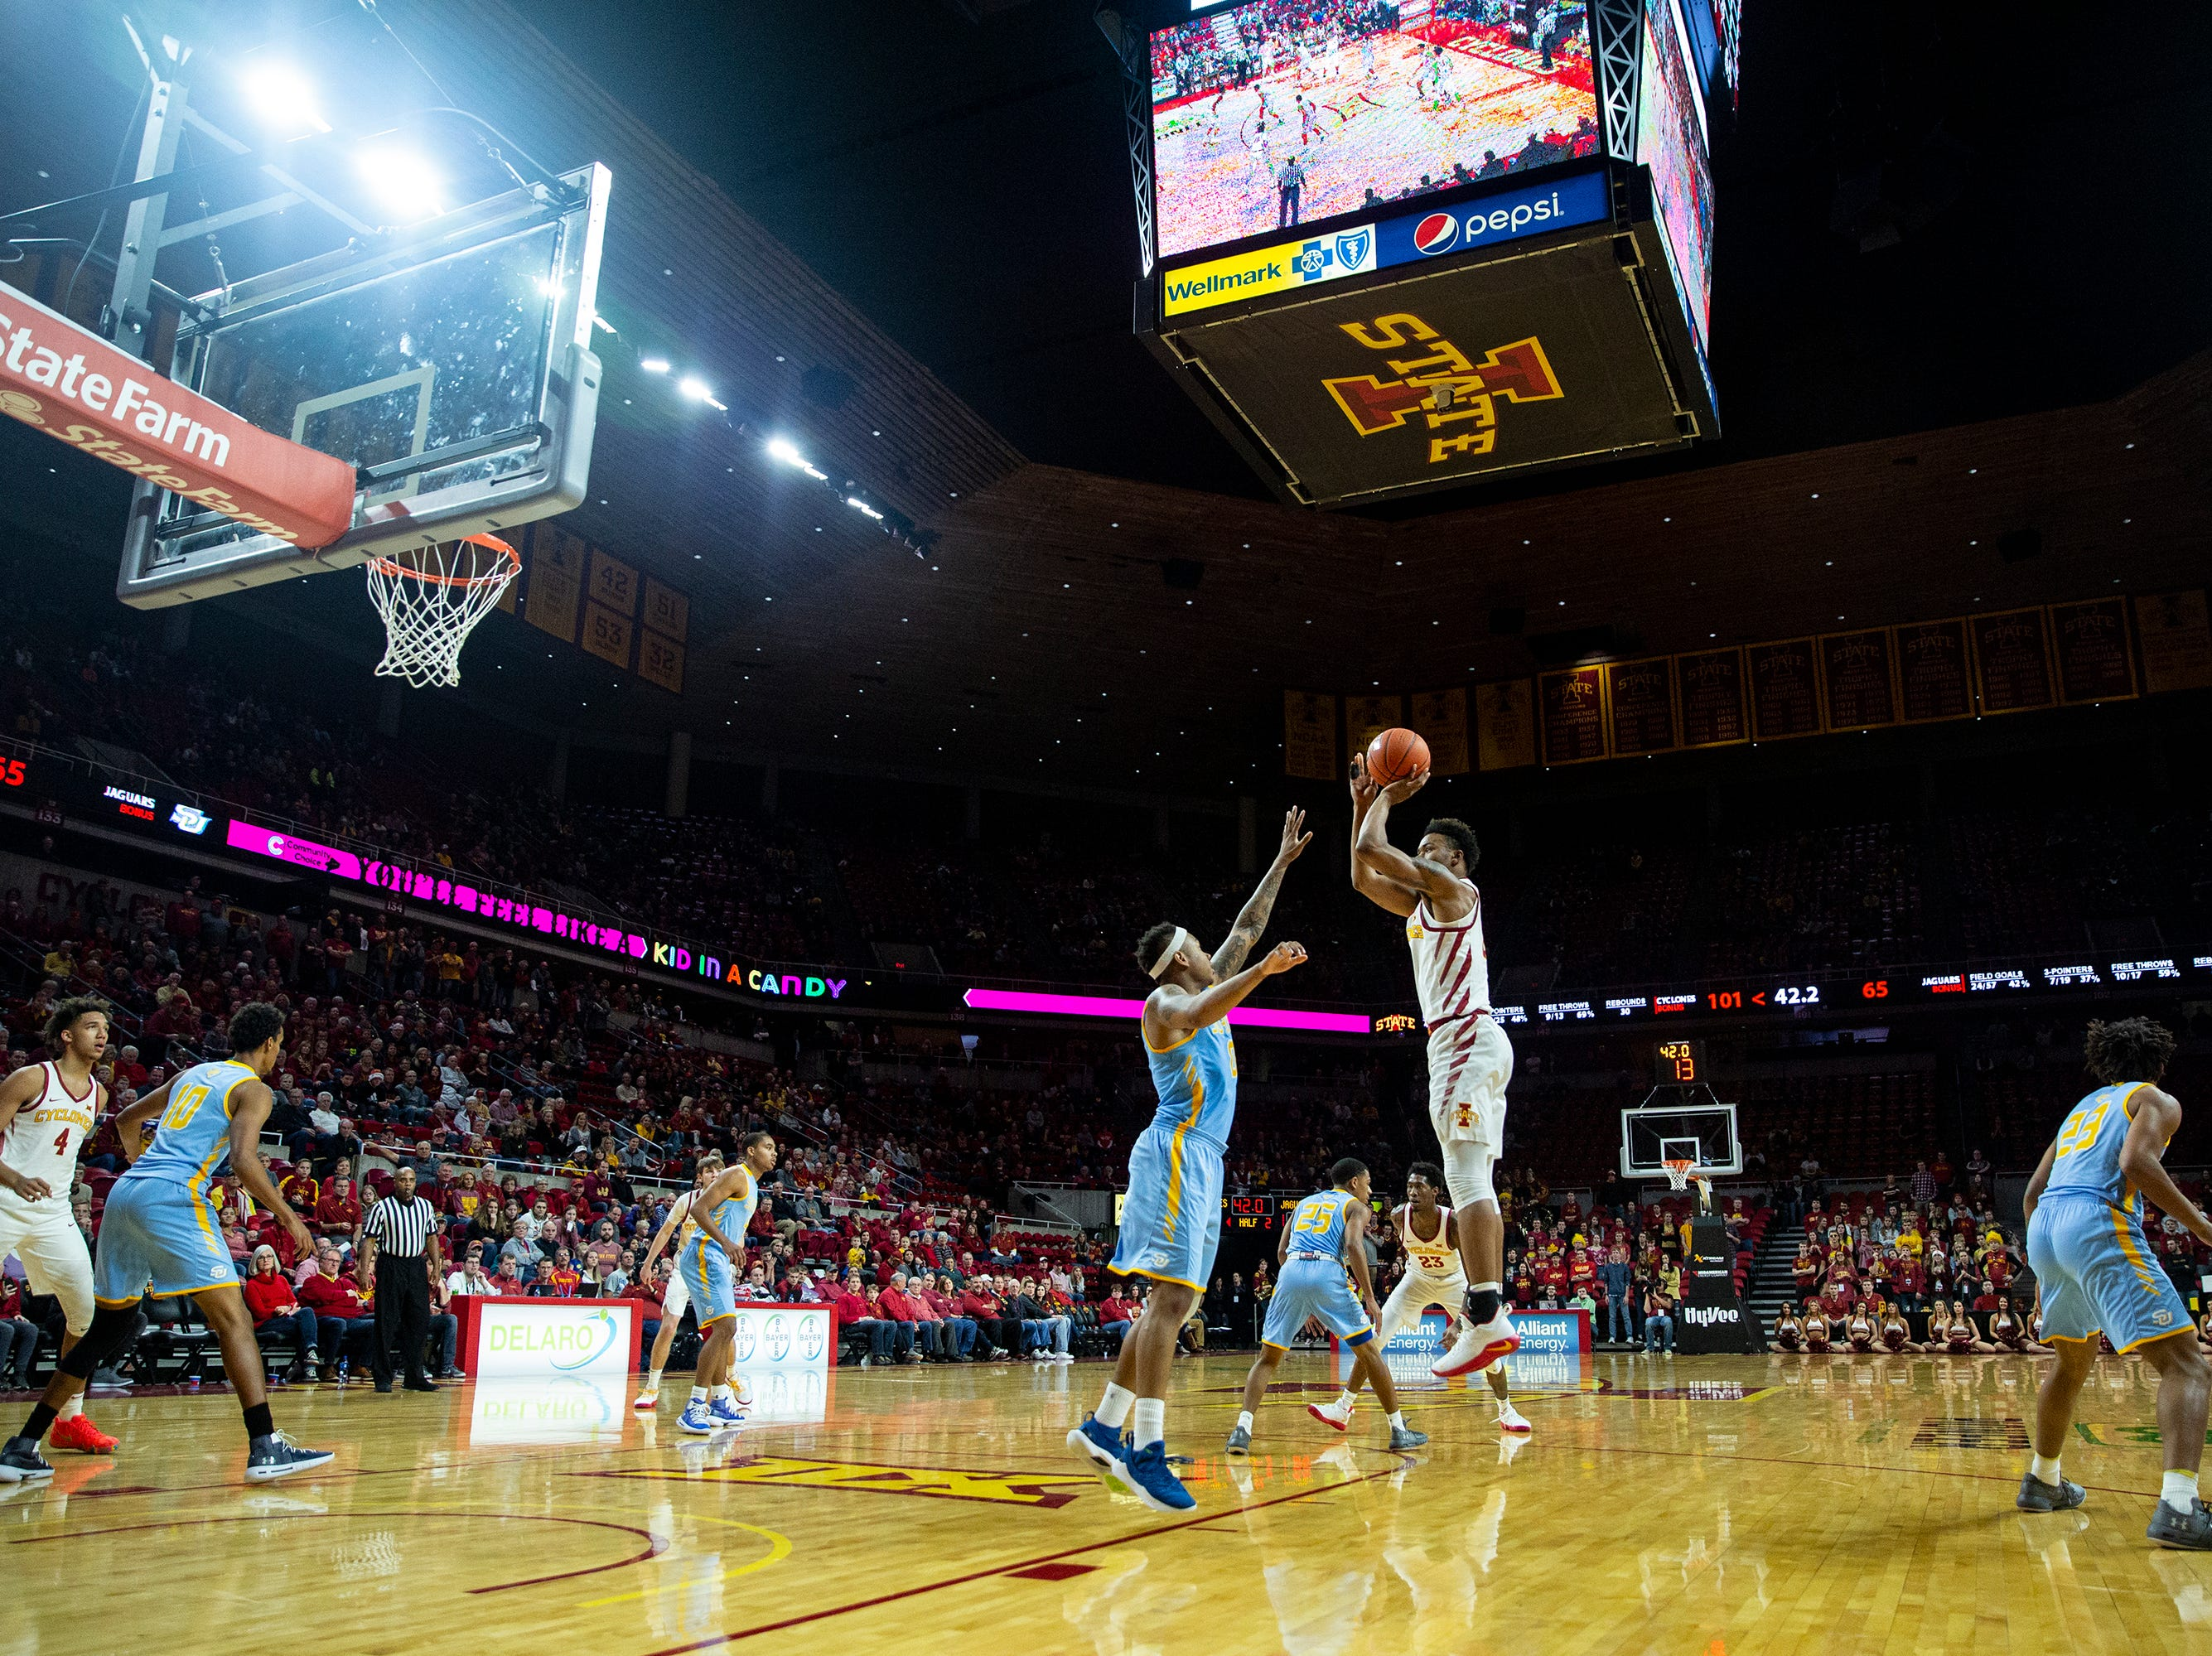 Iowa State's Zion Griffin makes a jump-shot during the Iowa State men's basketball game against Southern on Sunday, Dec. 9, 2018, in Hilton Coliseum.